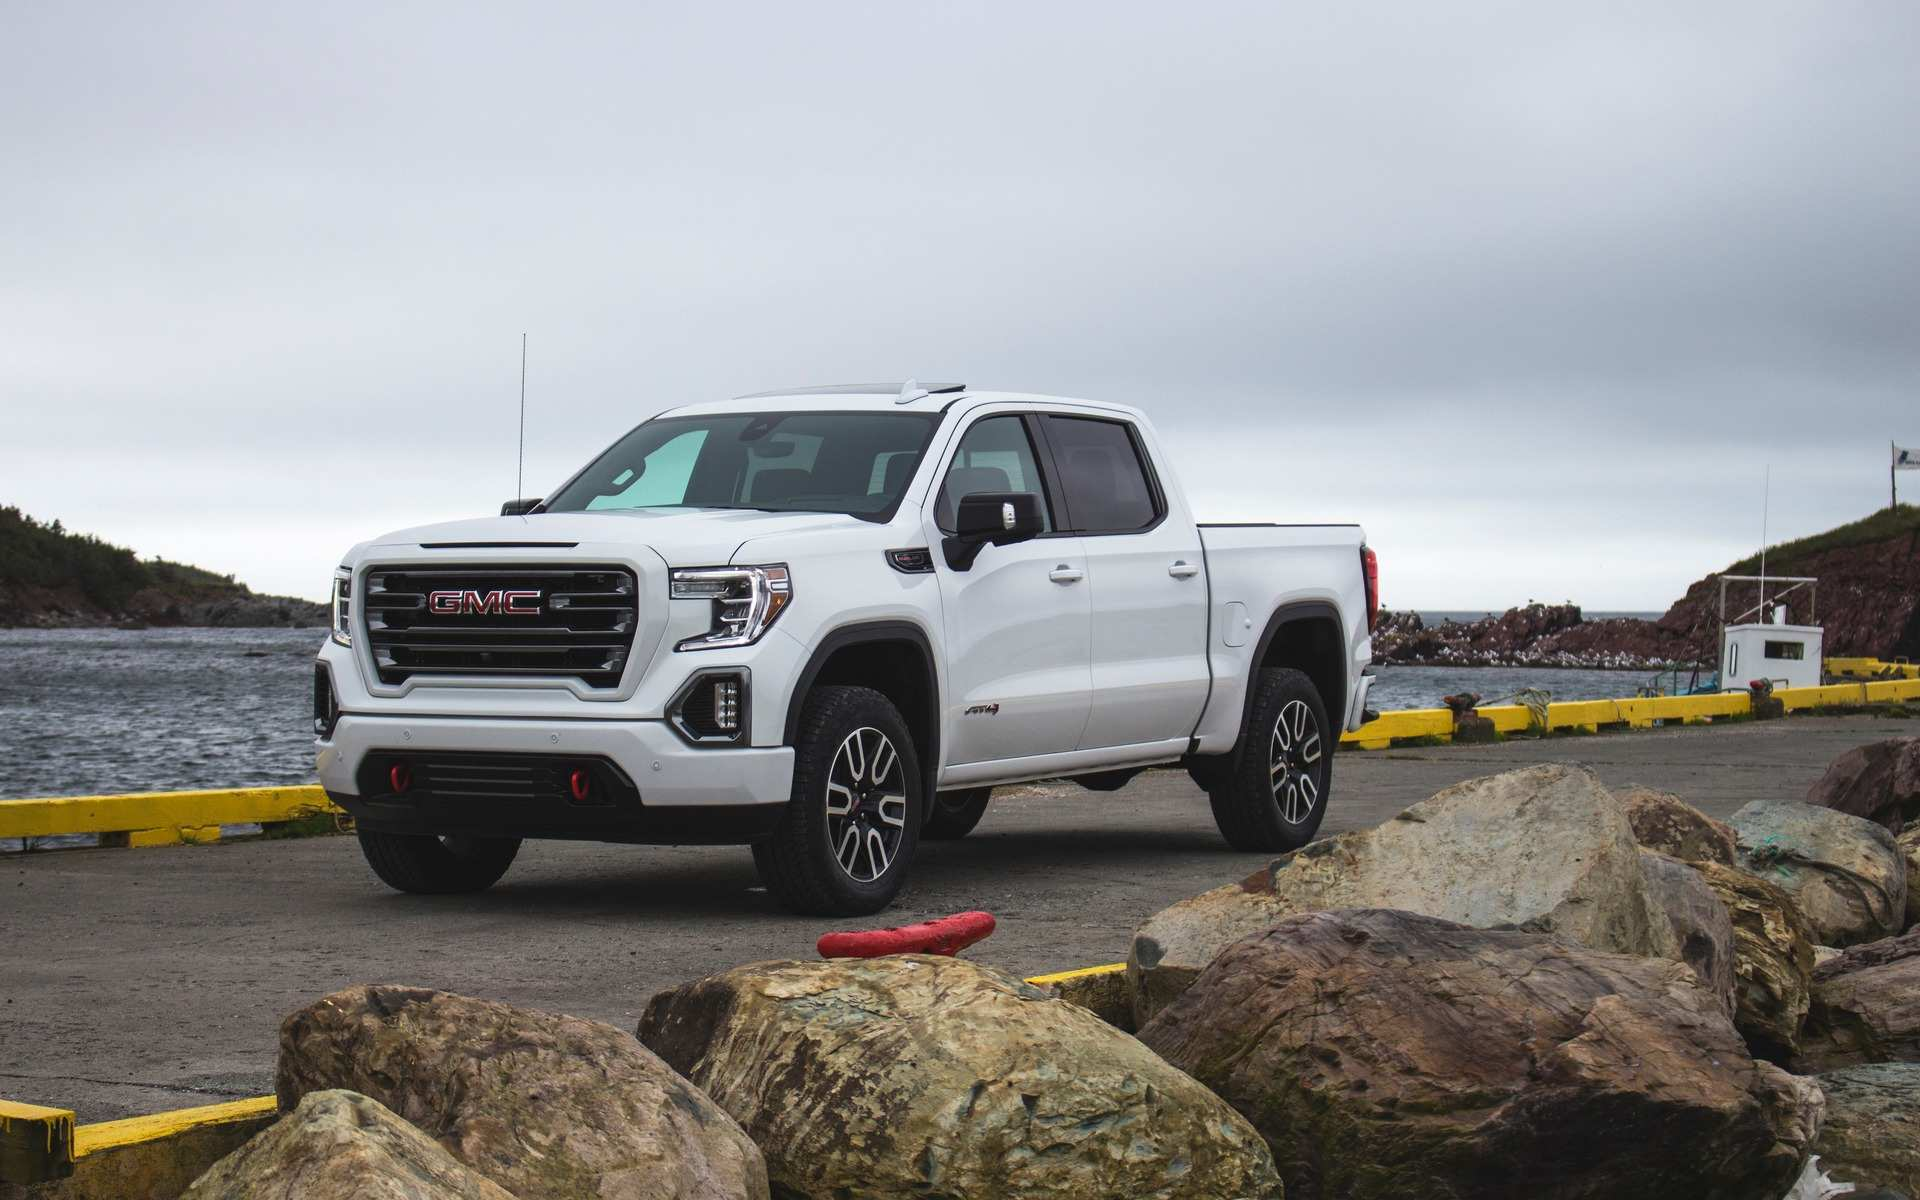 69 All New 2019 Gmc Pics Price And Release Date